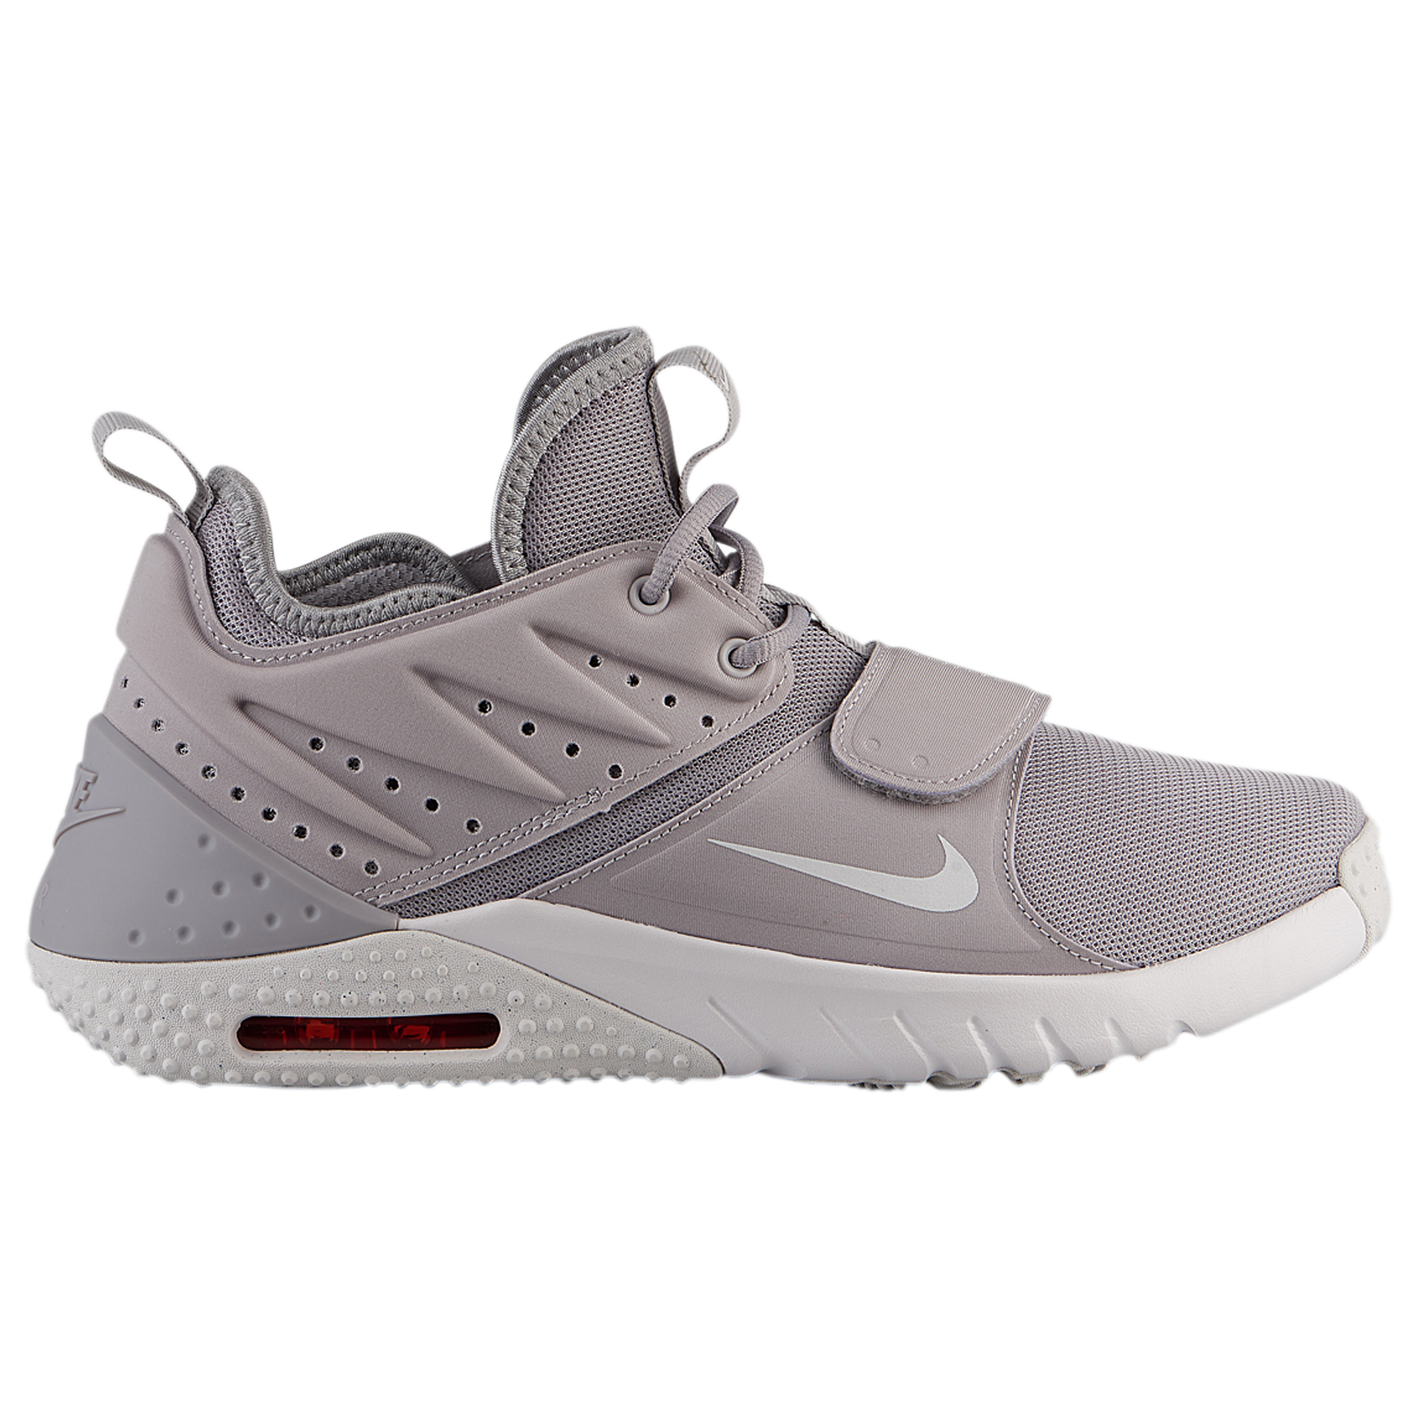 762a3be3f0 Nike Air Max Trainer 1 - Men's - Training - Shoes - Atmosphere Grey ...